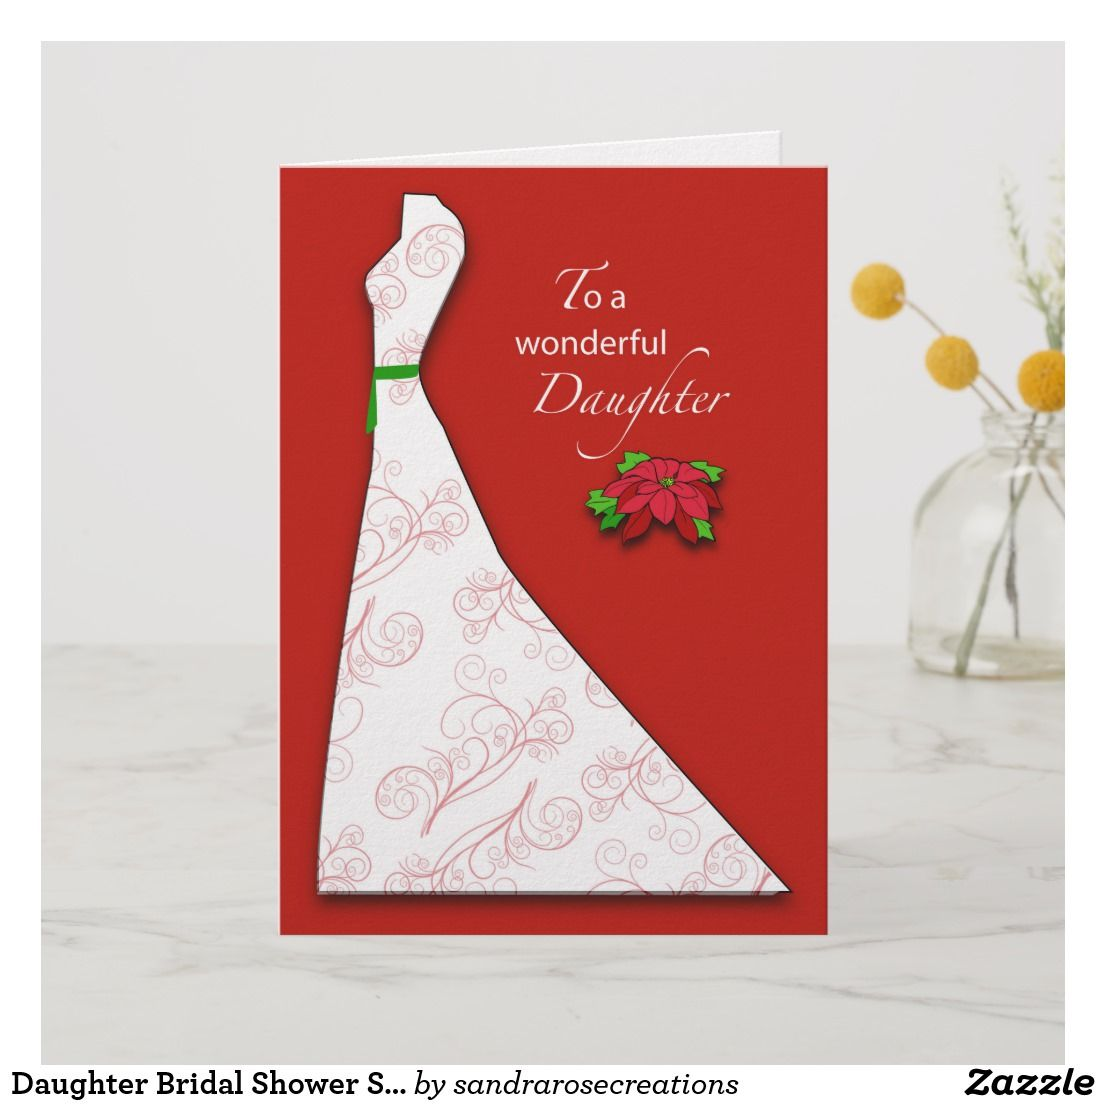 Daughter bridal shower silhouette christmas holiday card